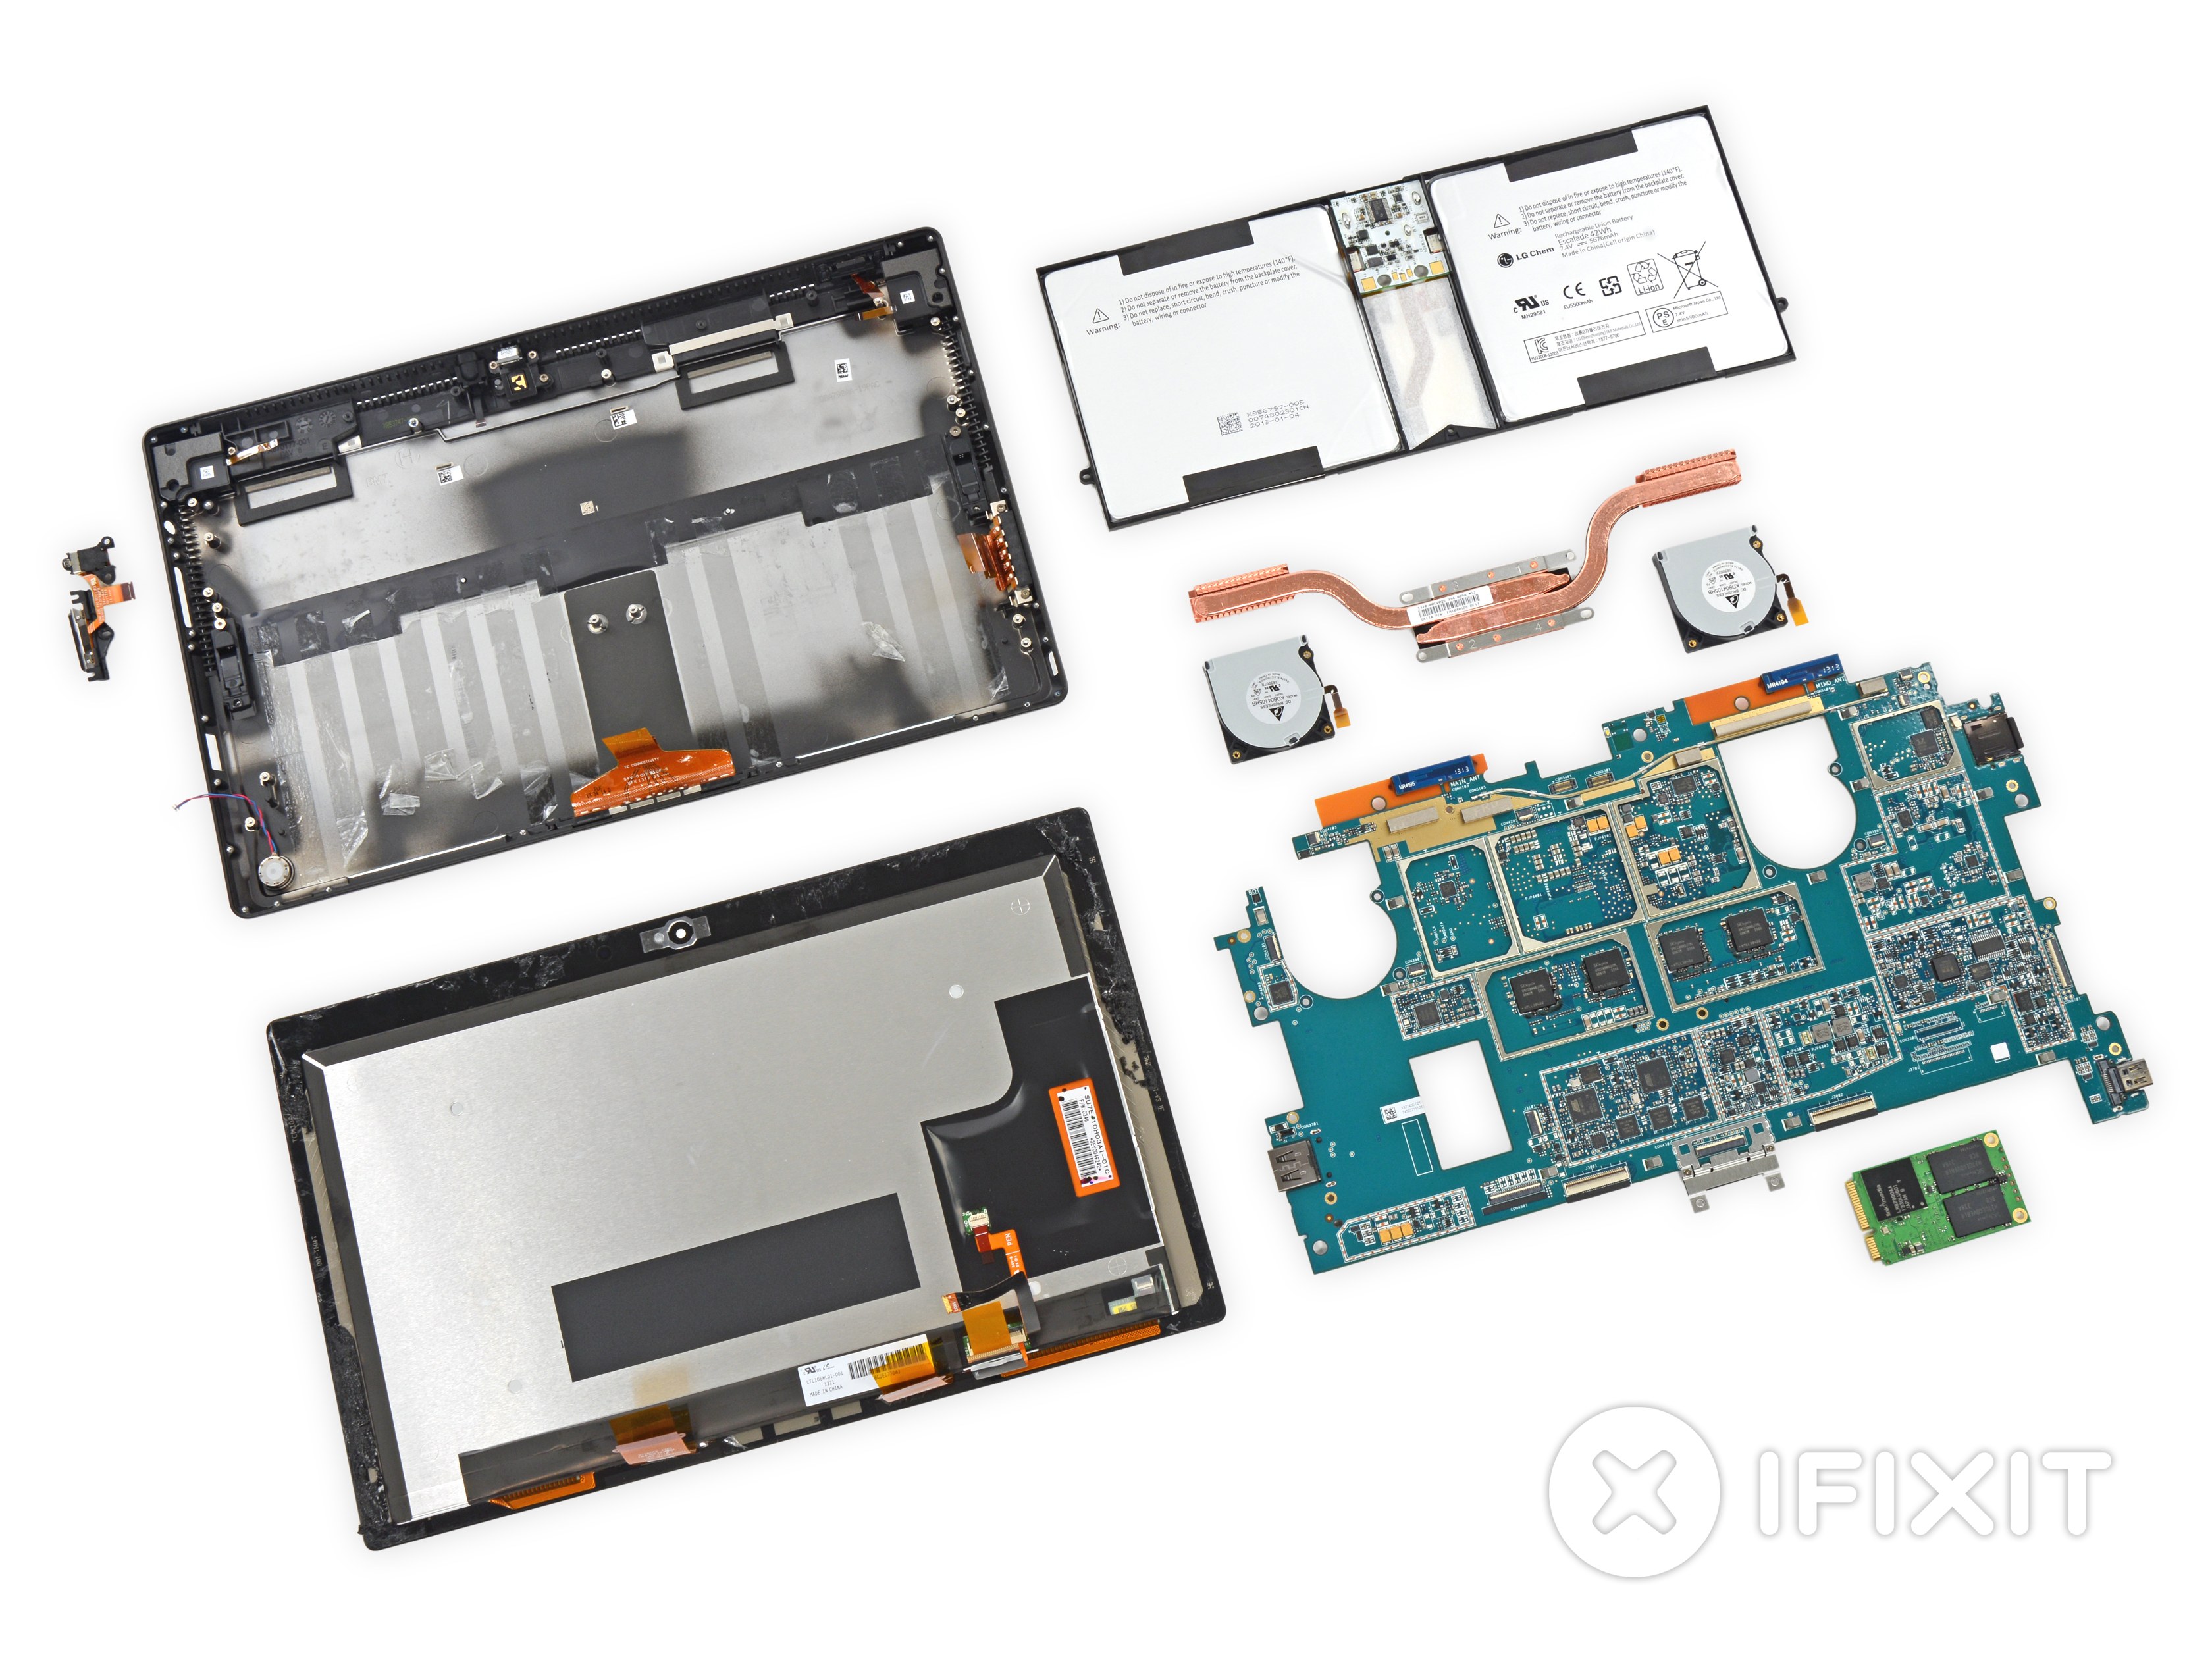 Microsoft Surface Pro 2 Teardown Ifixit Basic Circuit Bending Tutorial